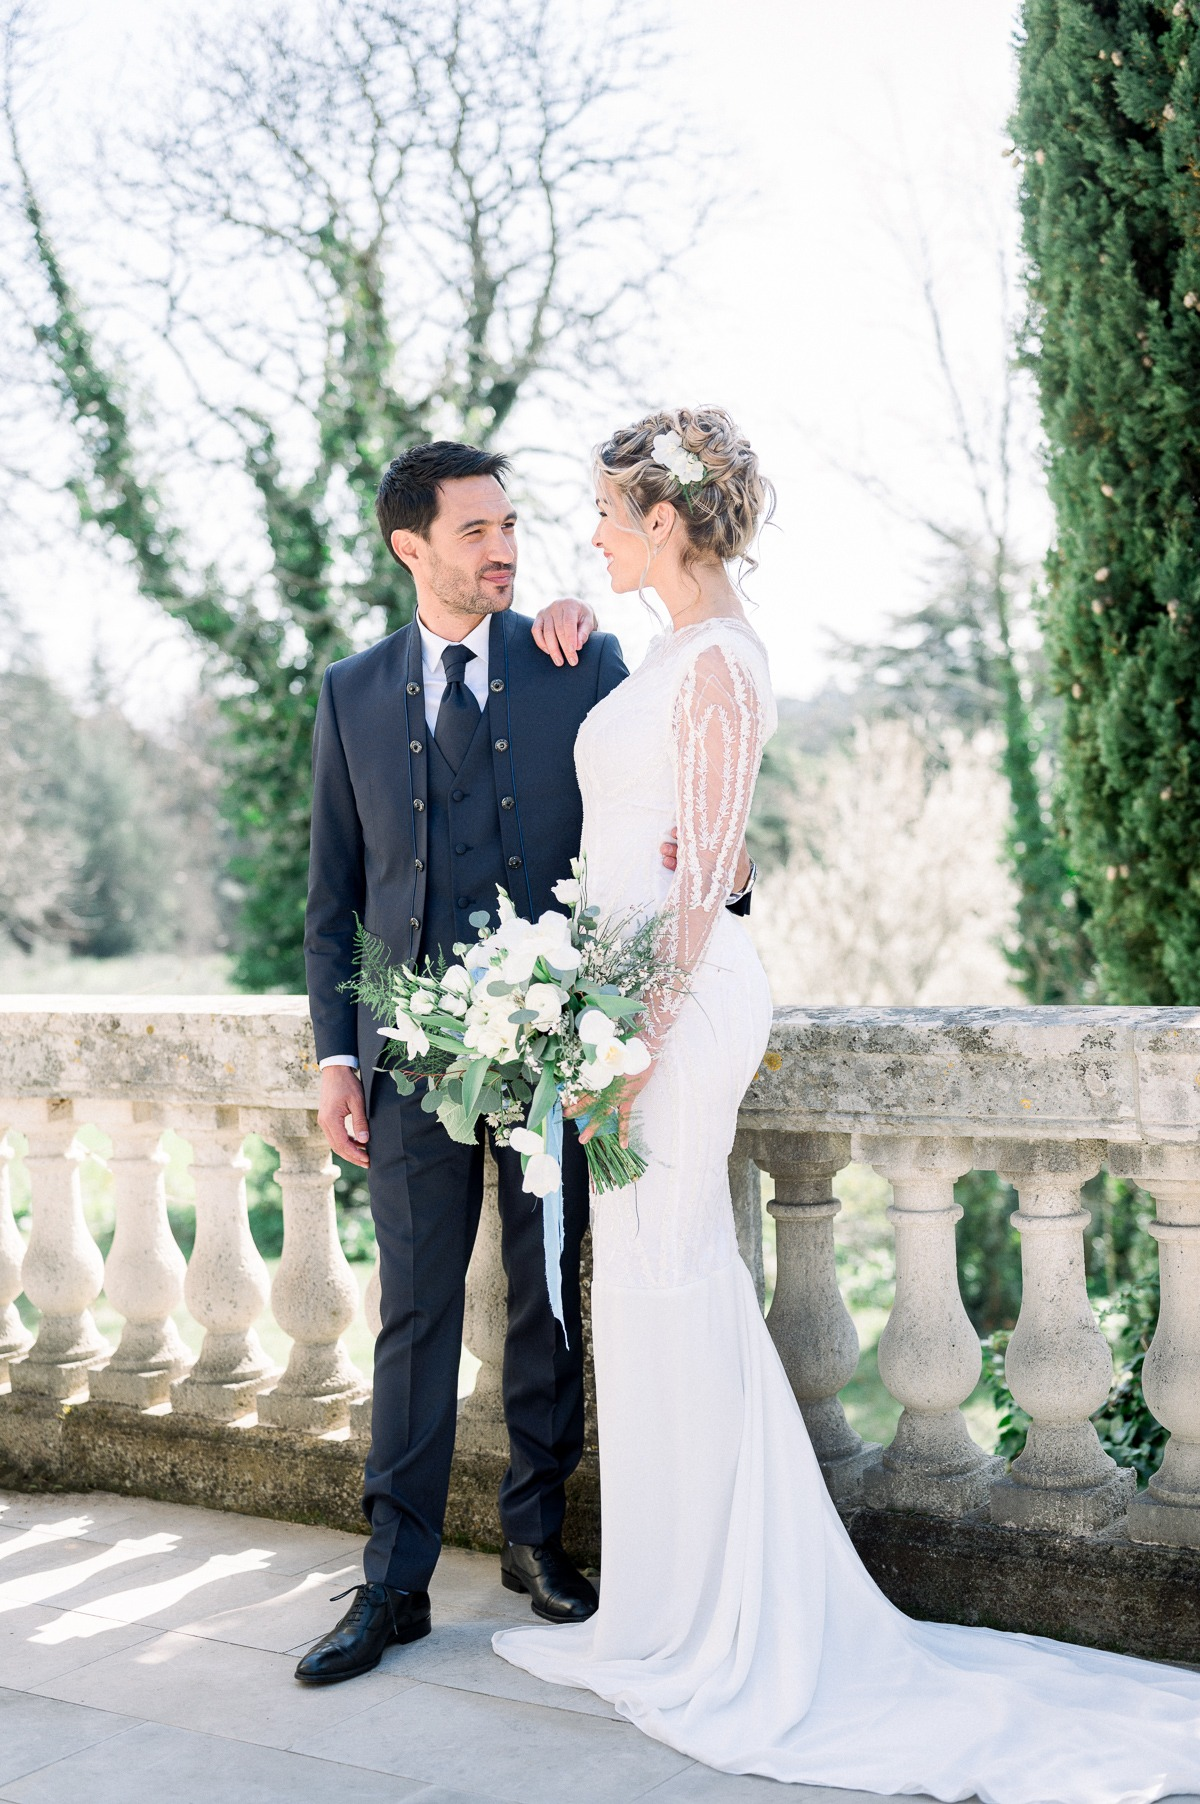 A Suit Steals The Show In This Stunning Inspiration Shoot At A Scenic French Château